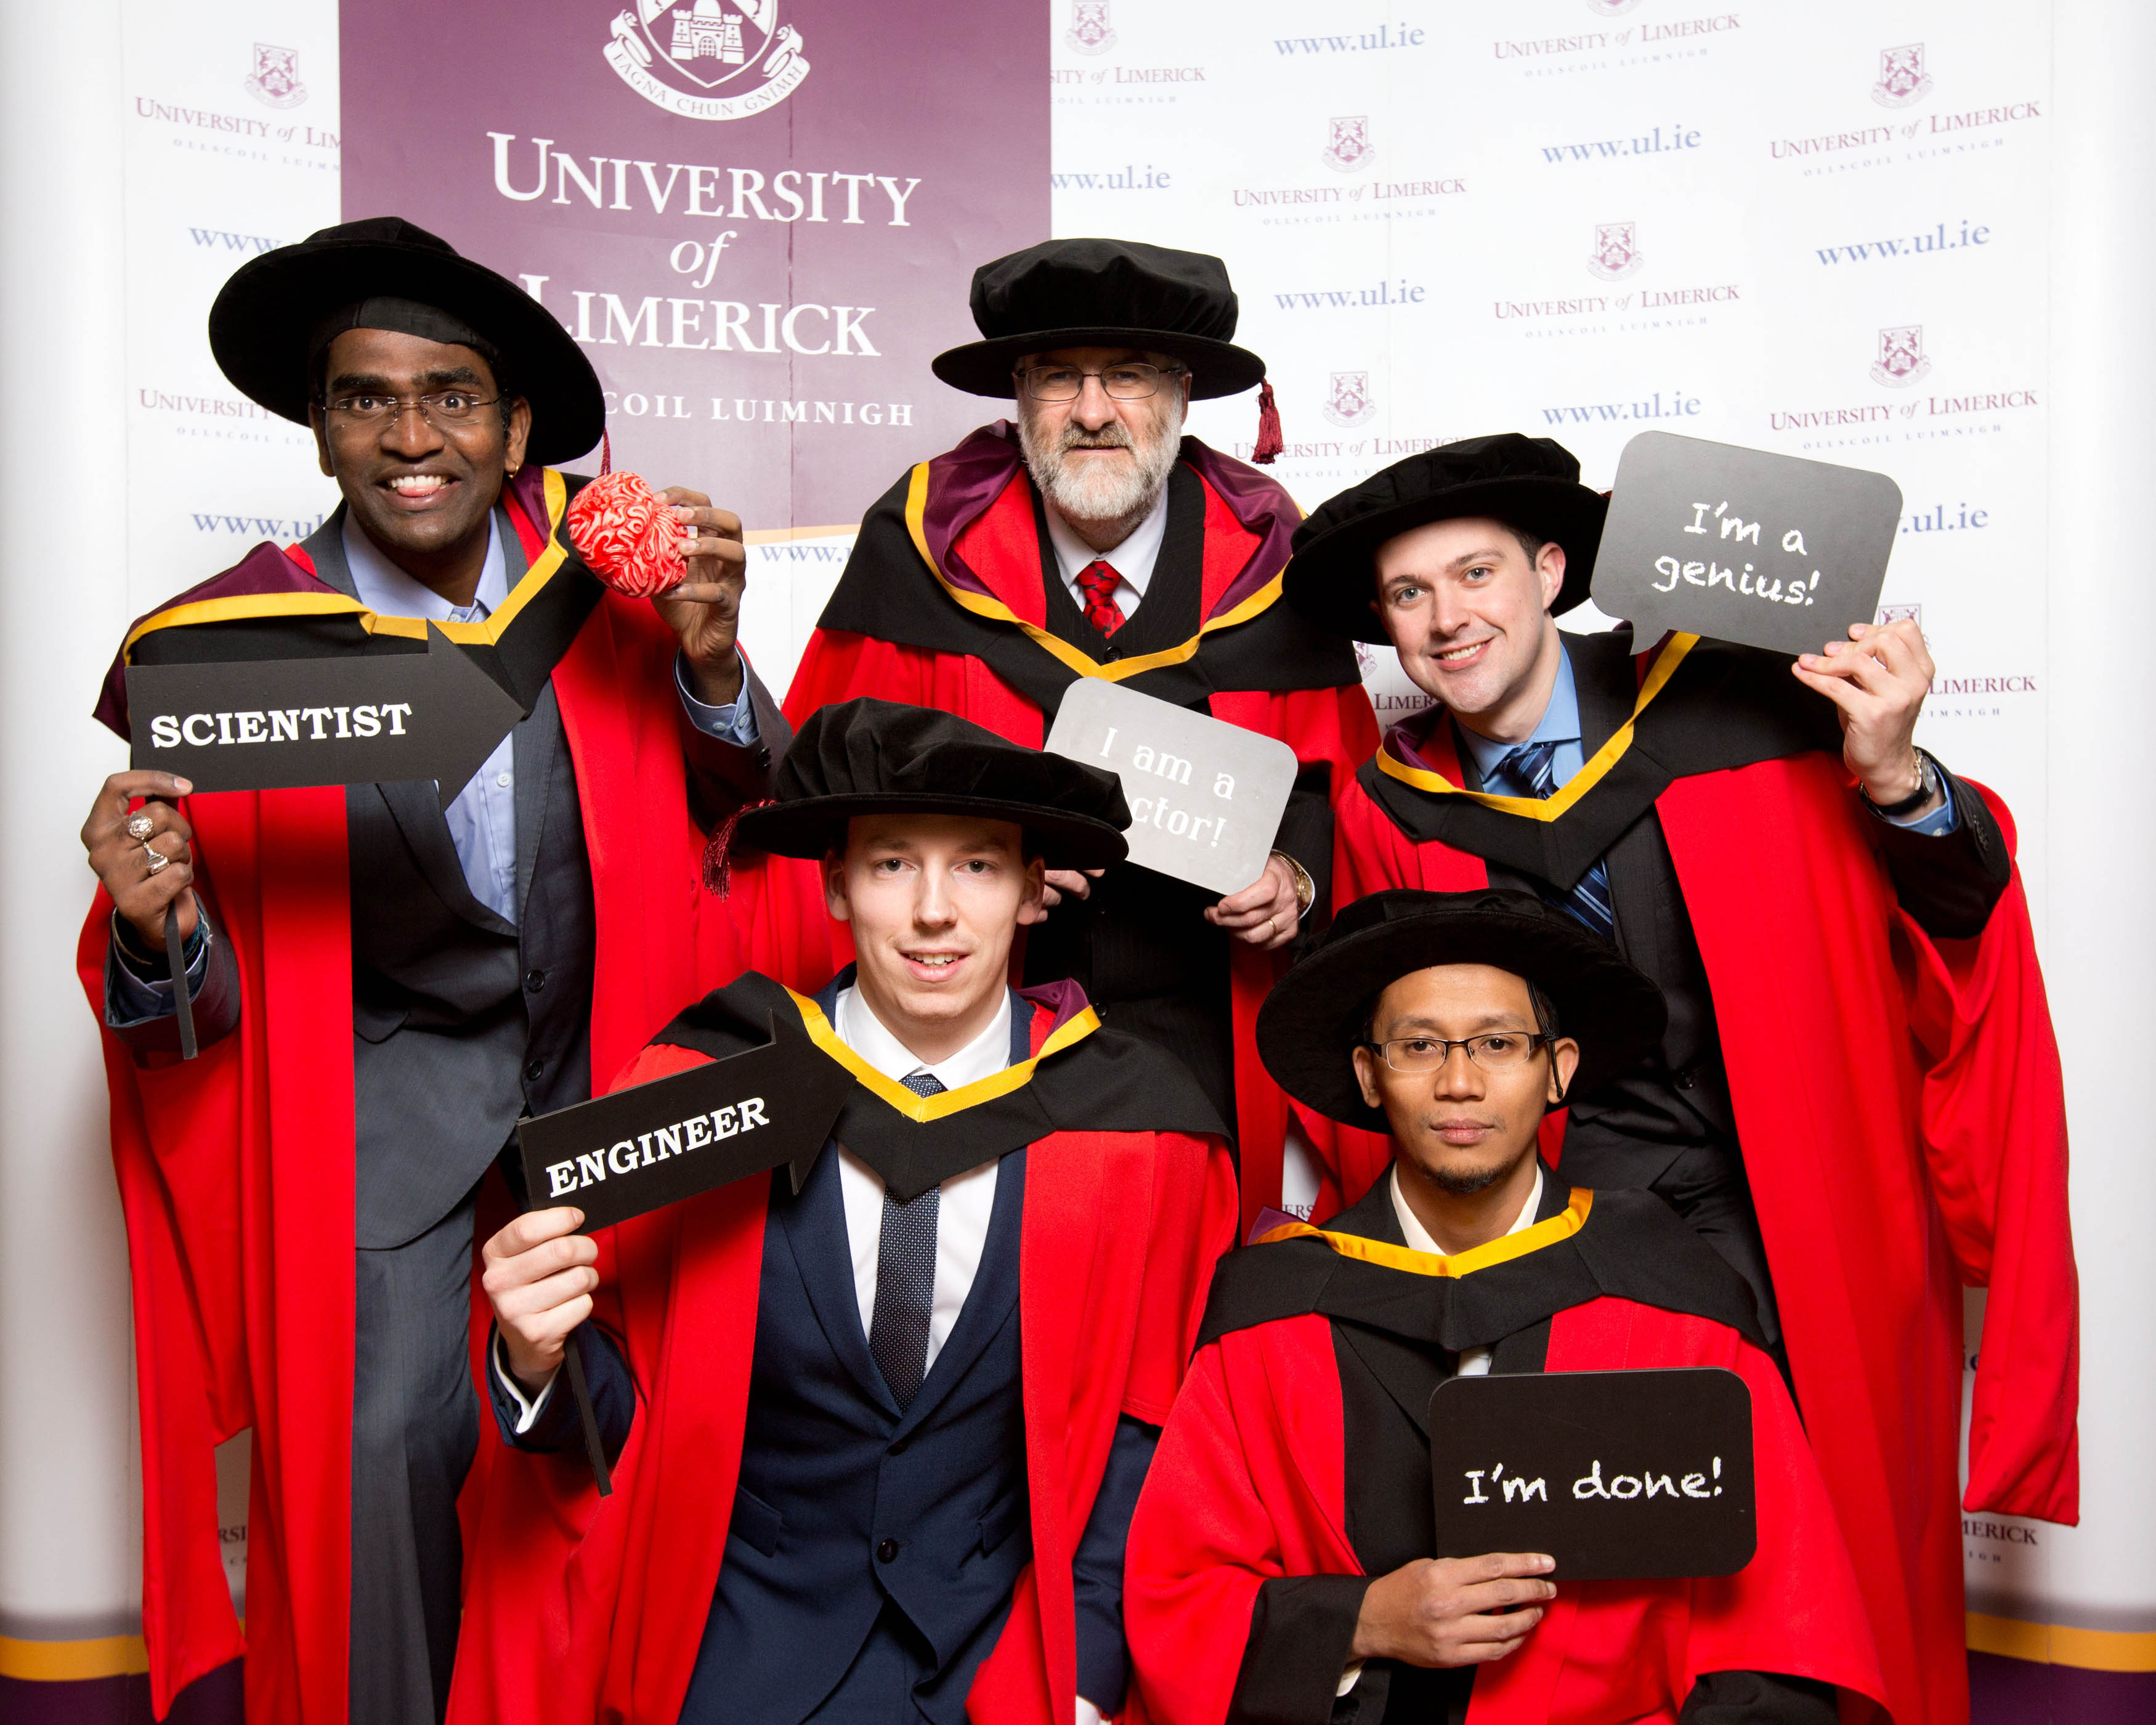 students graduate from the University of Limerick